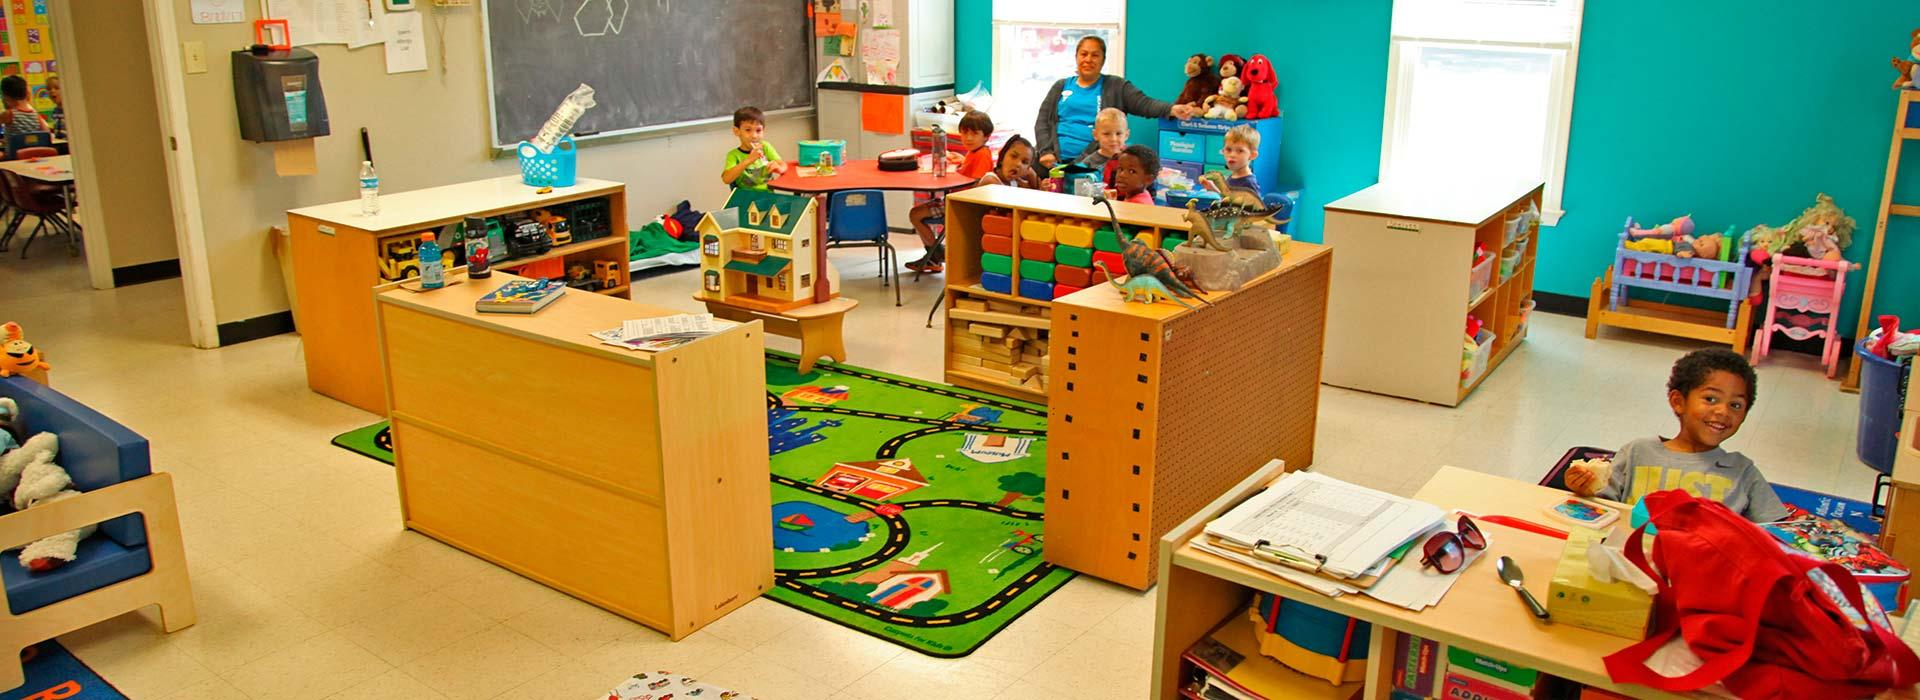 Preschoolers in classroom at Salem YMCA Family Center